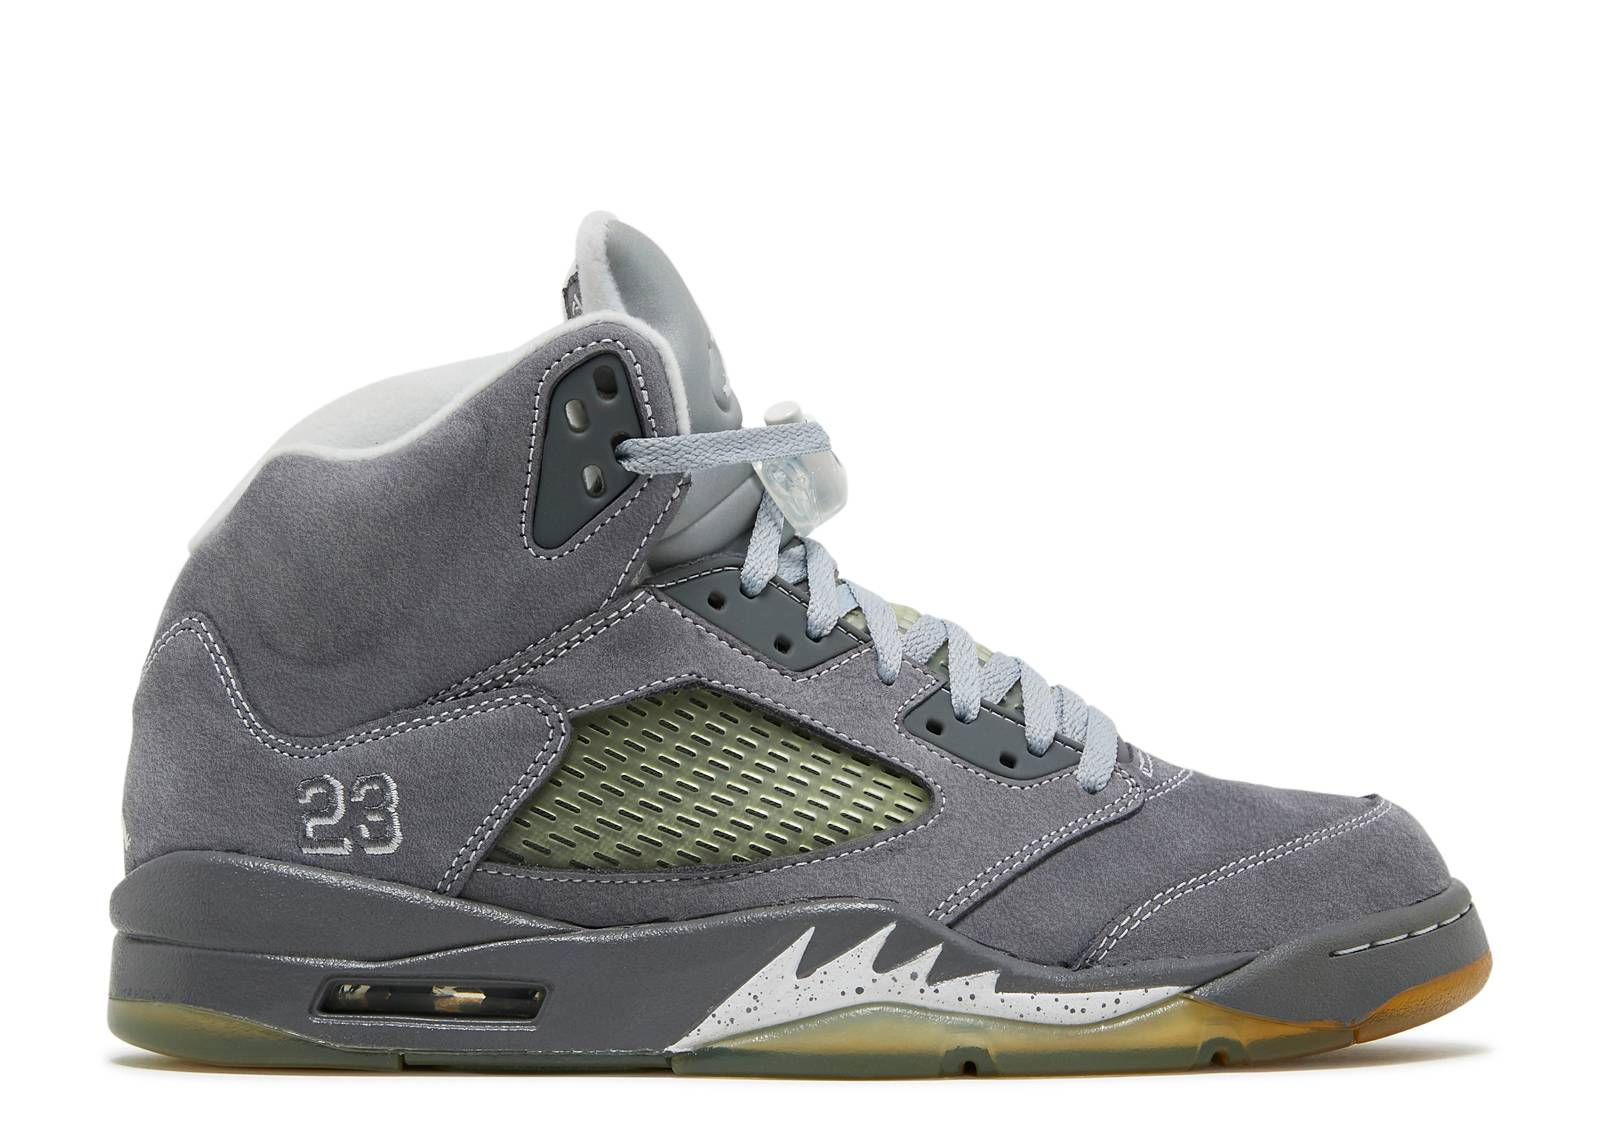 Jordan Shoes Gray And White